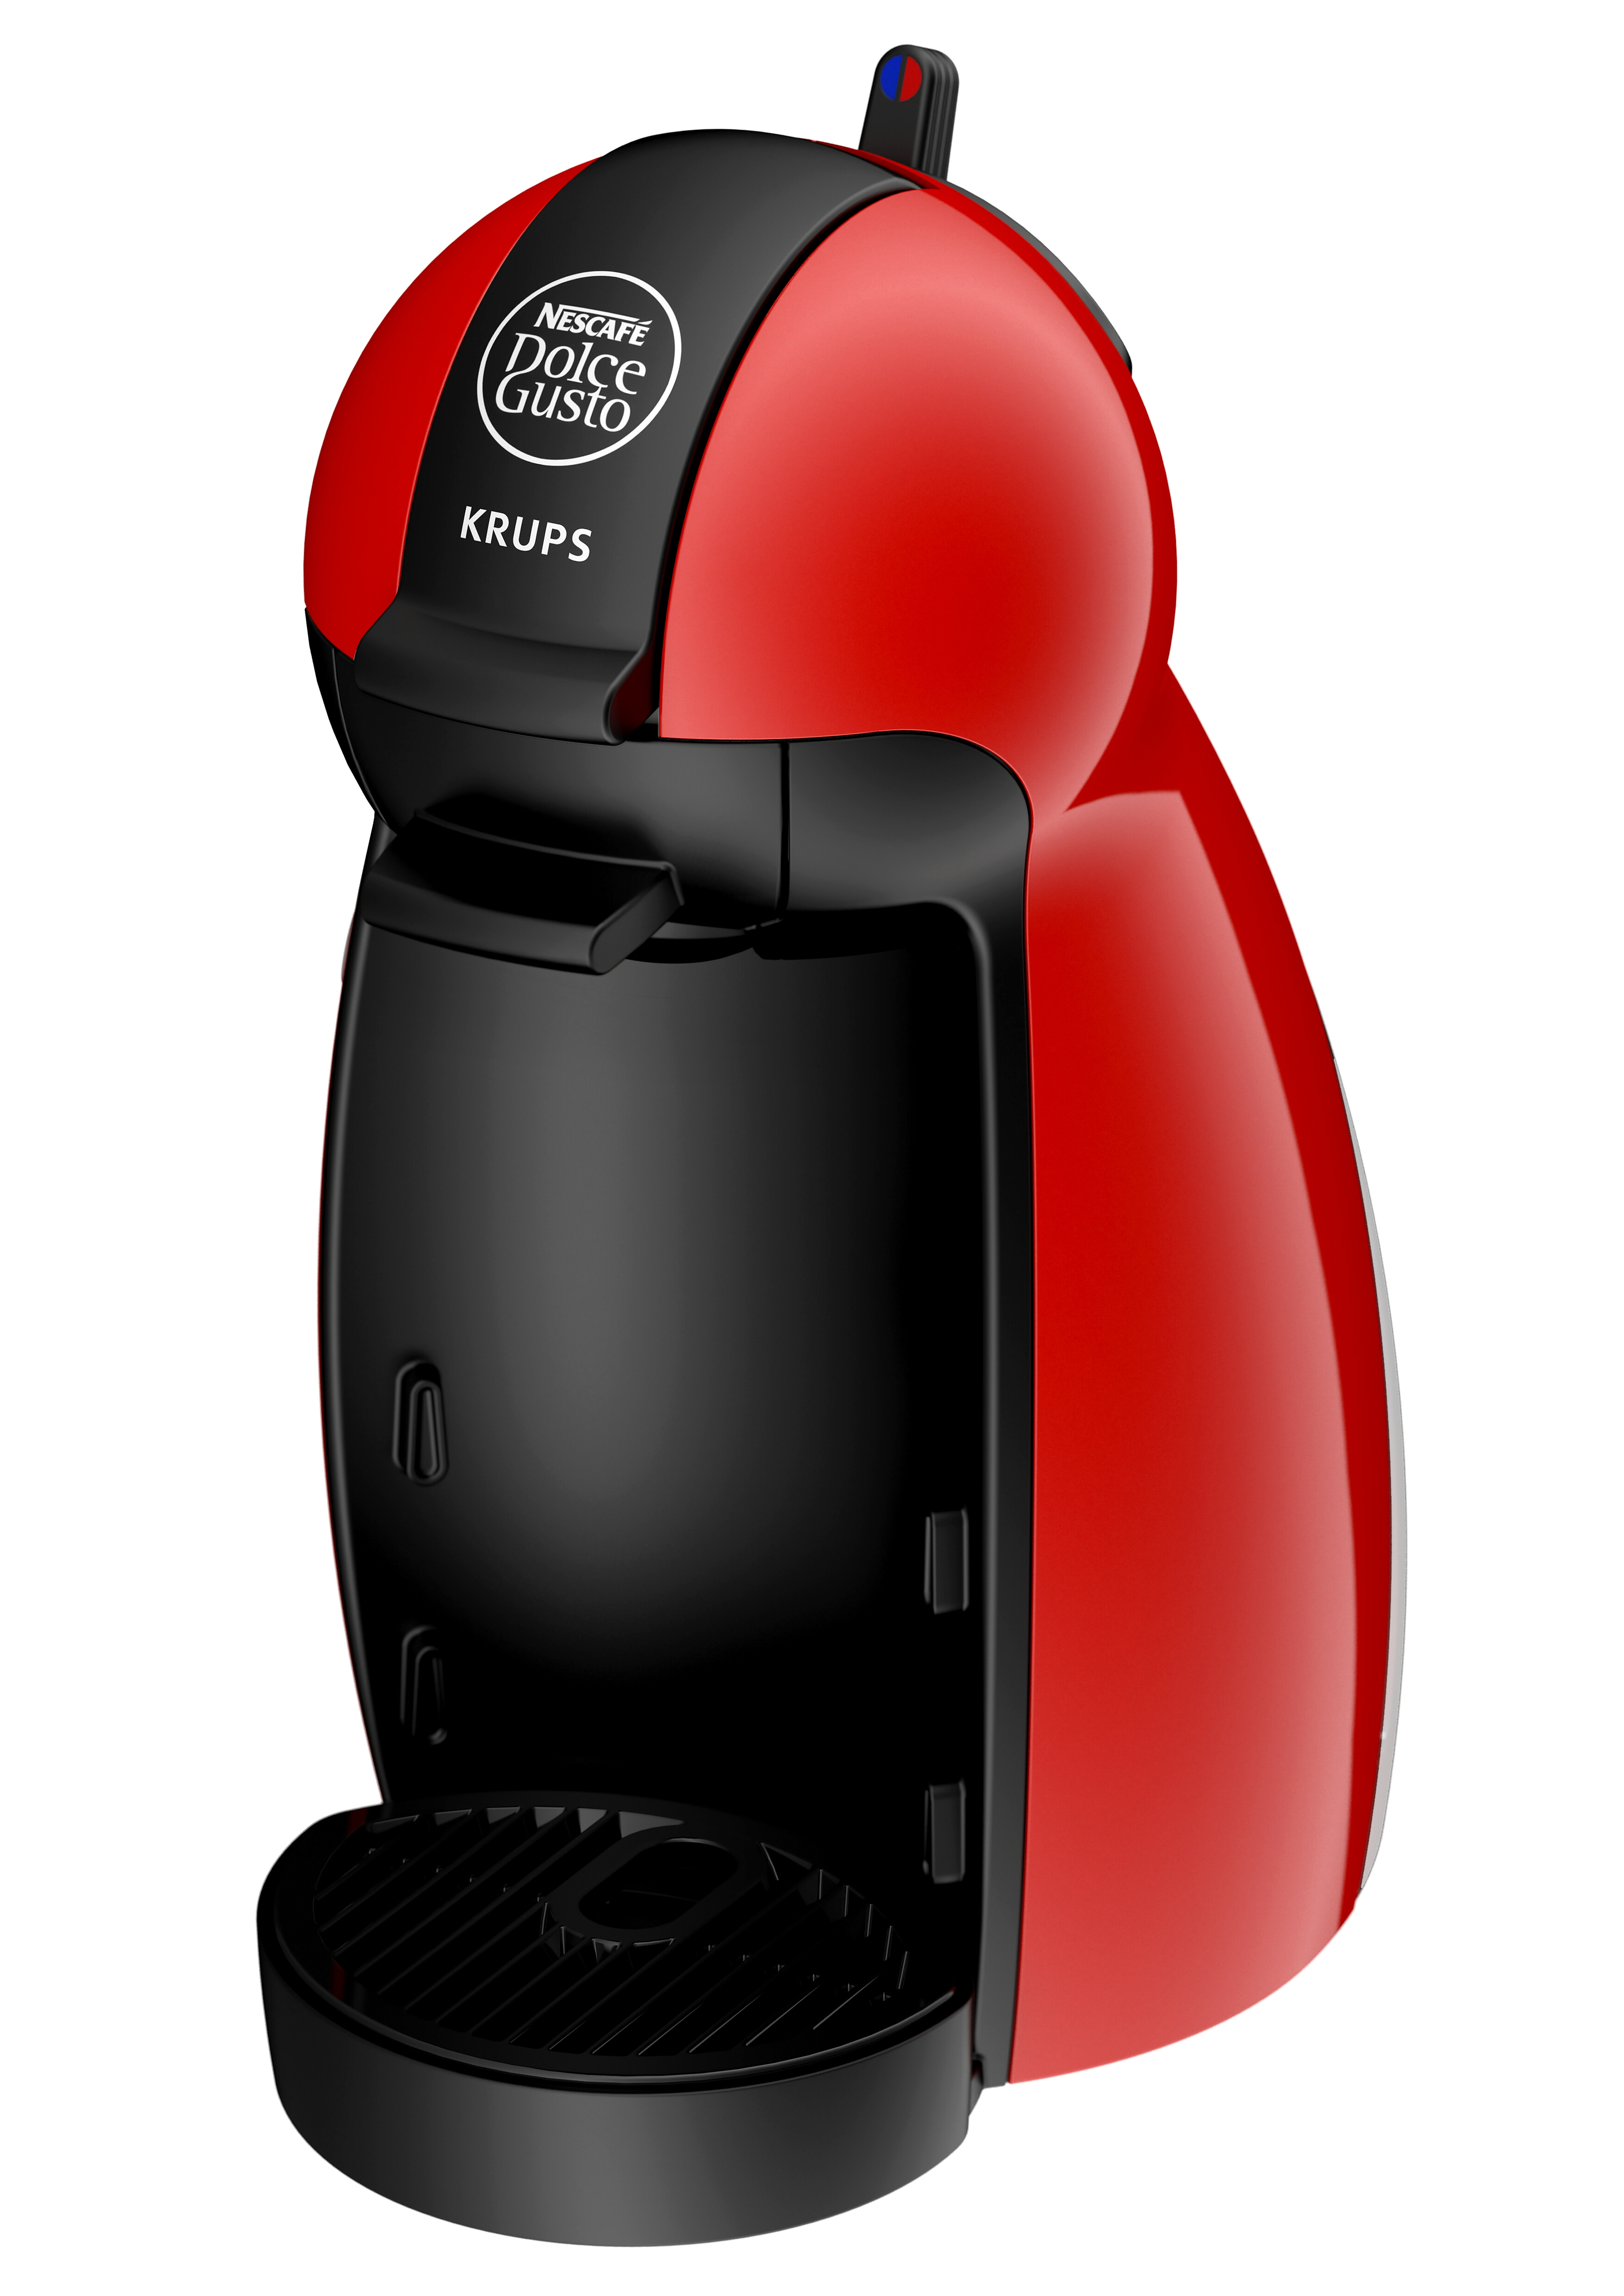 Electronic Krups Capsule Coffee Machine how to use a krups dolce gusto ebay coffee machine pod piccolo kp100640 red nescafe beverage maker